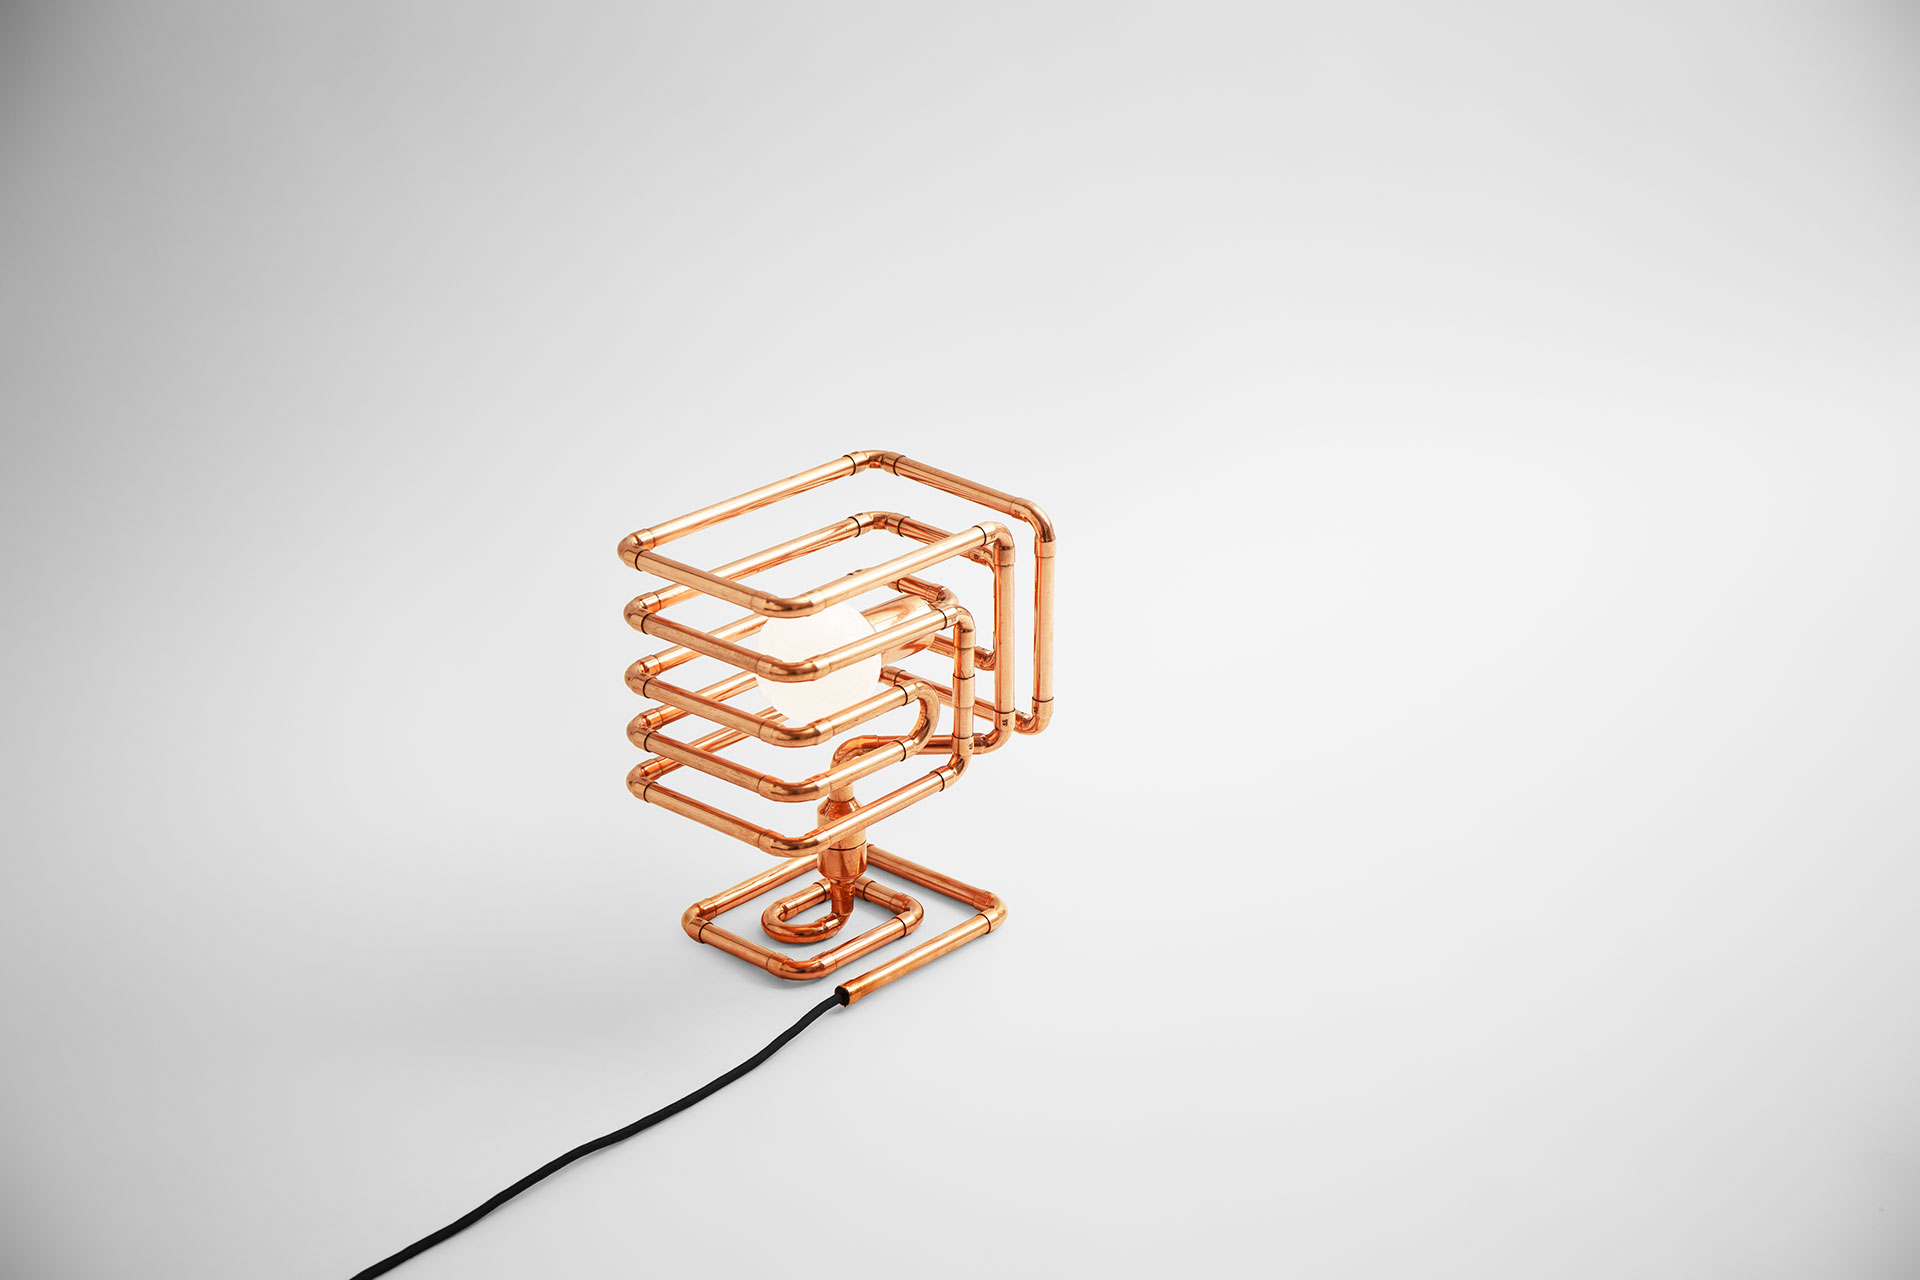 Designer table lamp in modern copper metal finish inspired by industrial sculpture art